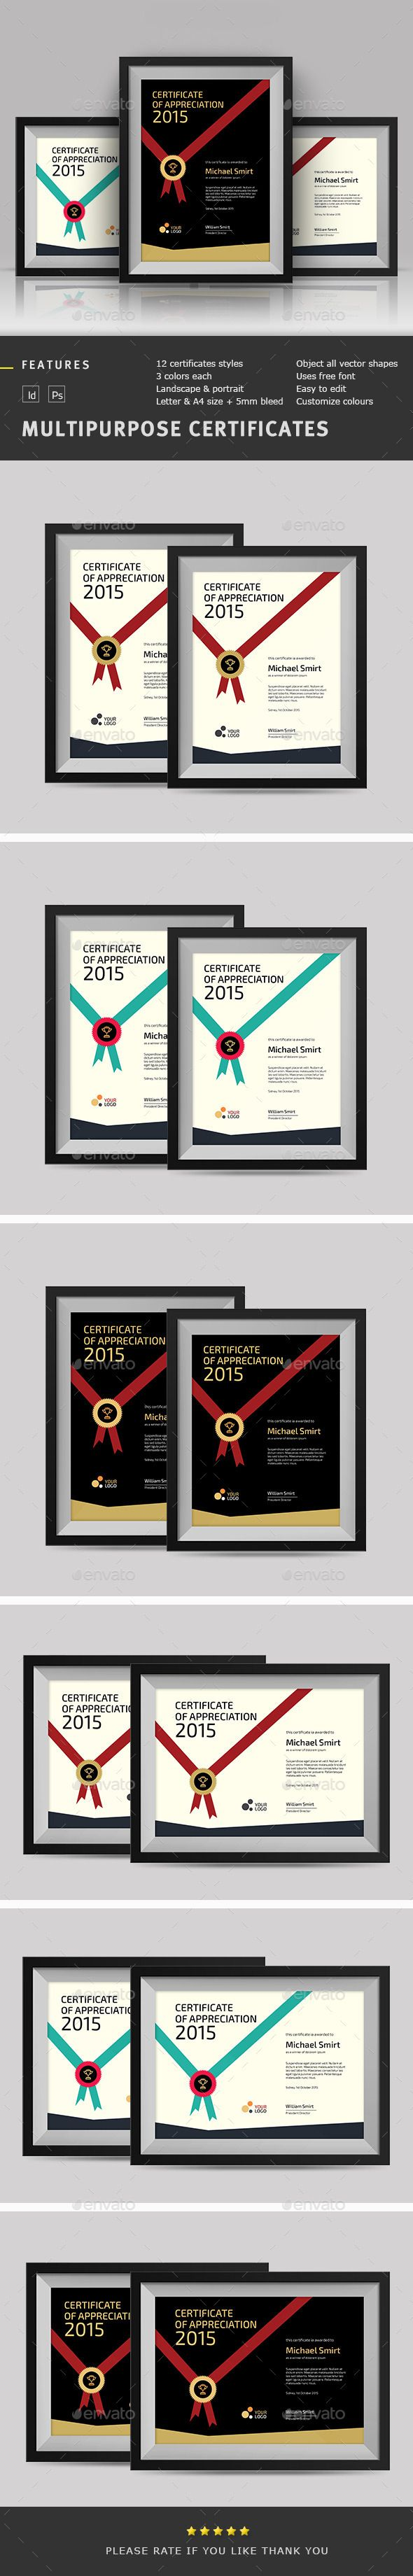 Multipurpose Certificates Template PSD, INDD. Download here: http://graphicriver.net/item/multipurpose-certificates/11664978?ref=ksioks